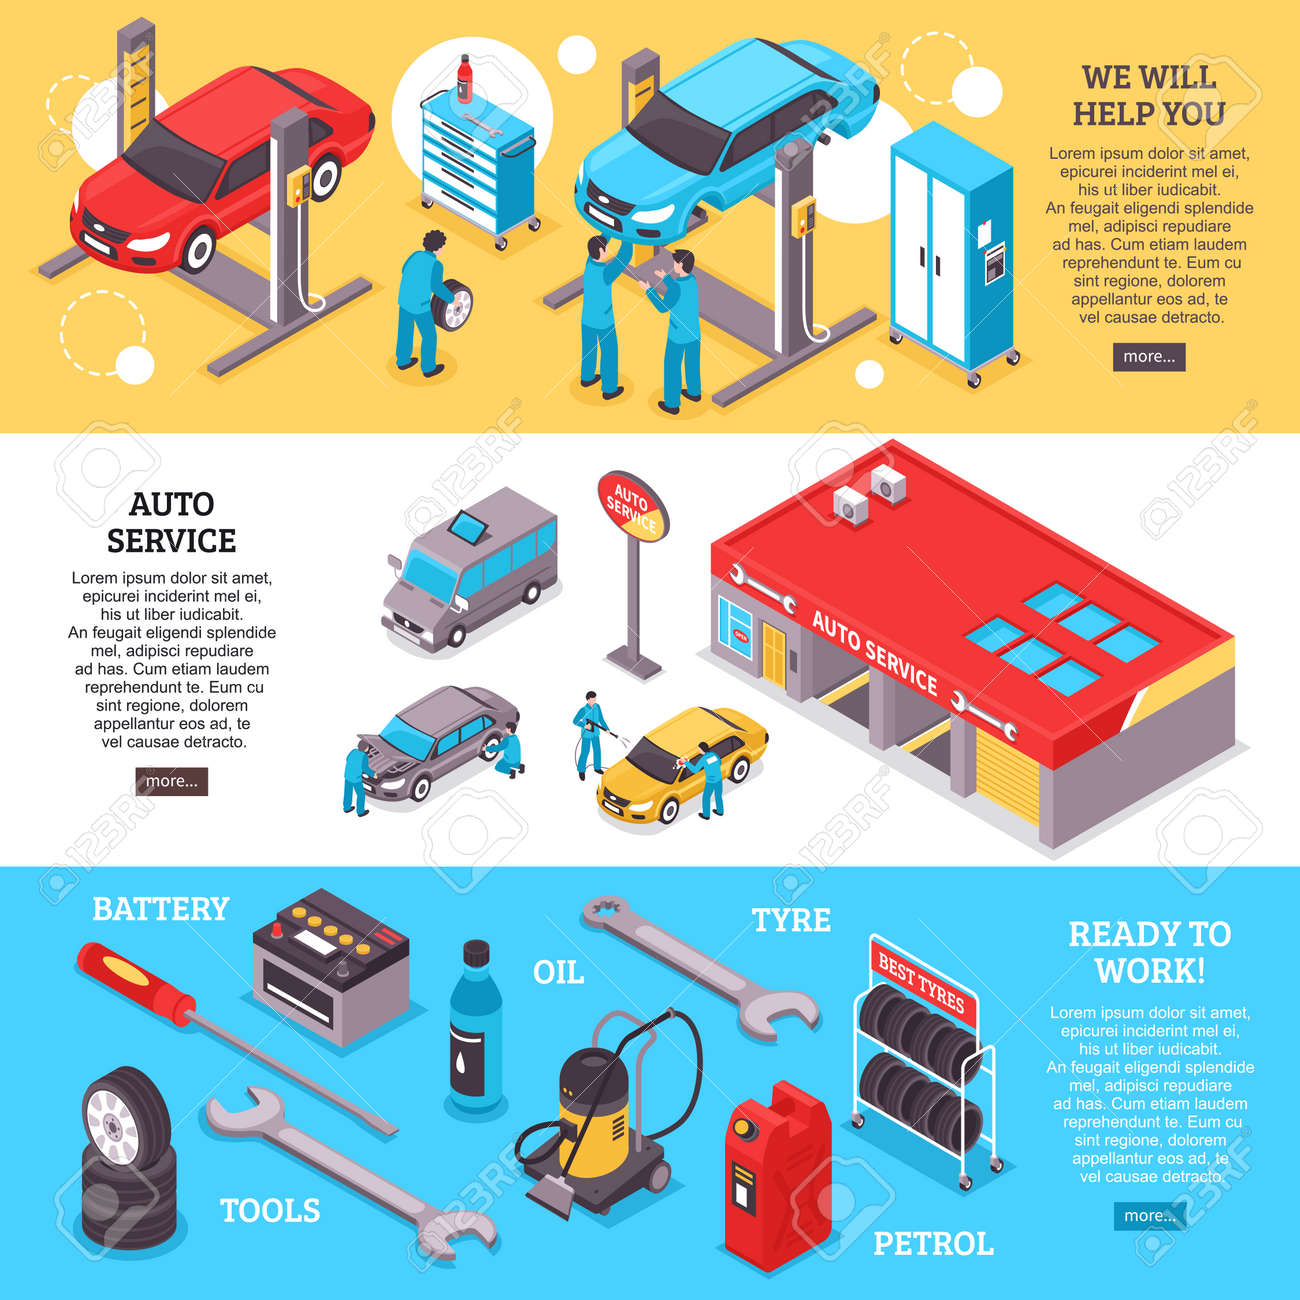 Auto service center workers and tools horizontal banners set 3d isolated vector illustration - 166075225